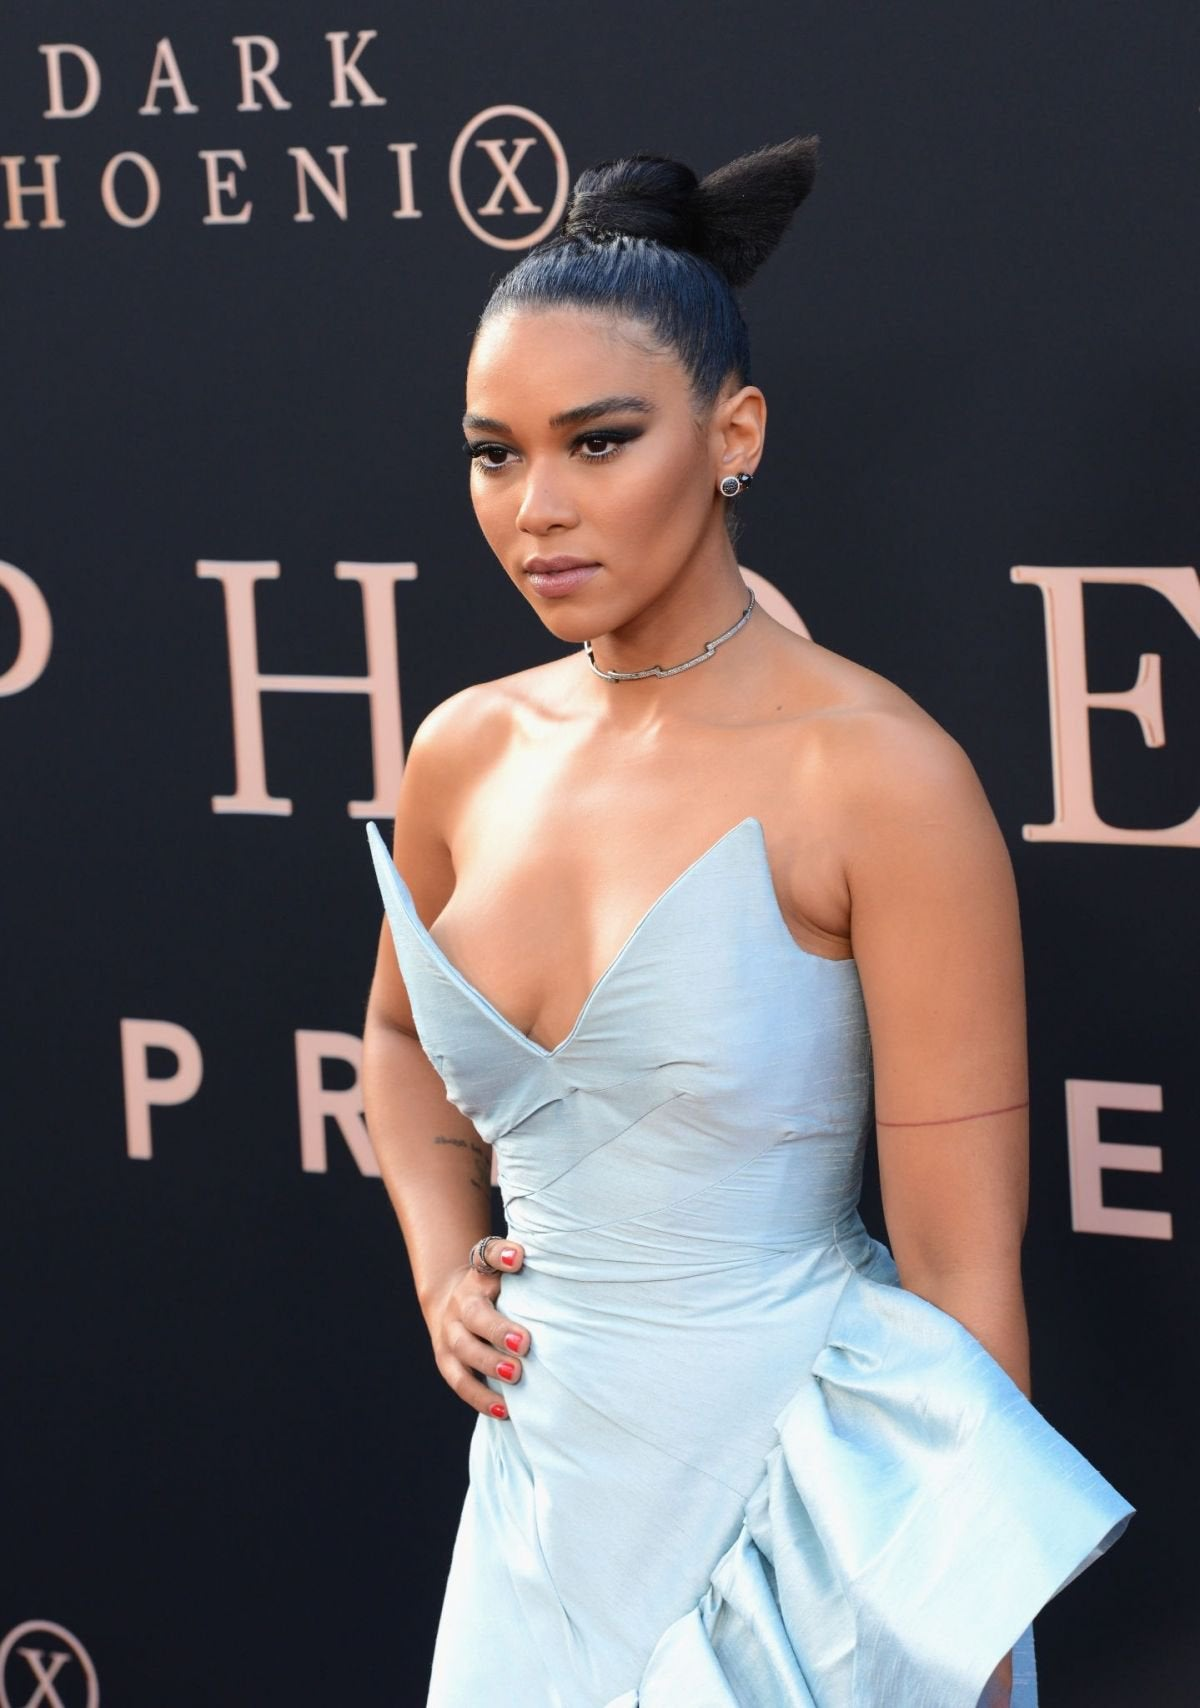 Alexandra Shipp Phone number, Email Id, Fanmail, Instagram, Tiktok, and Contact Details